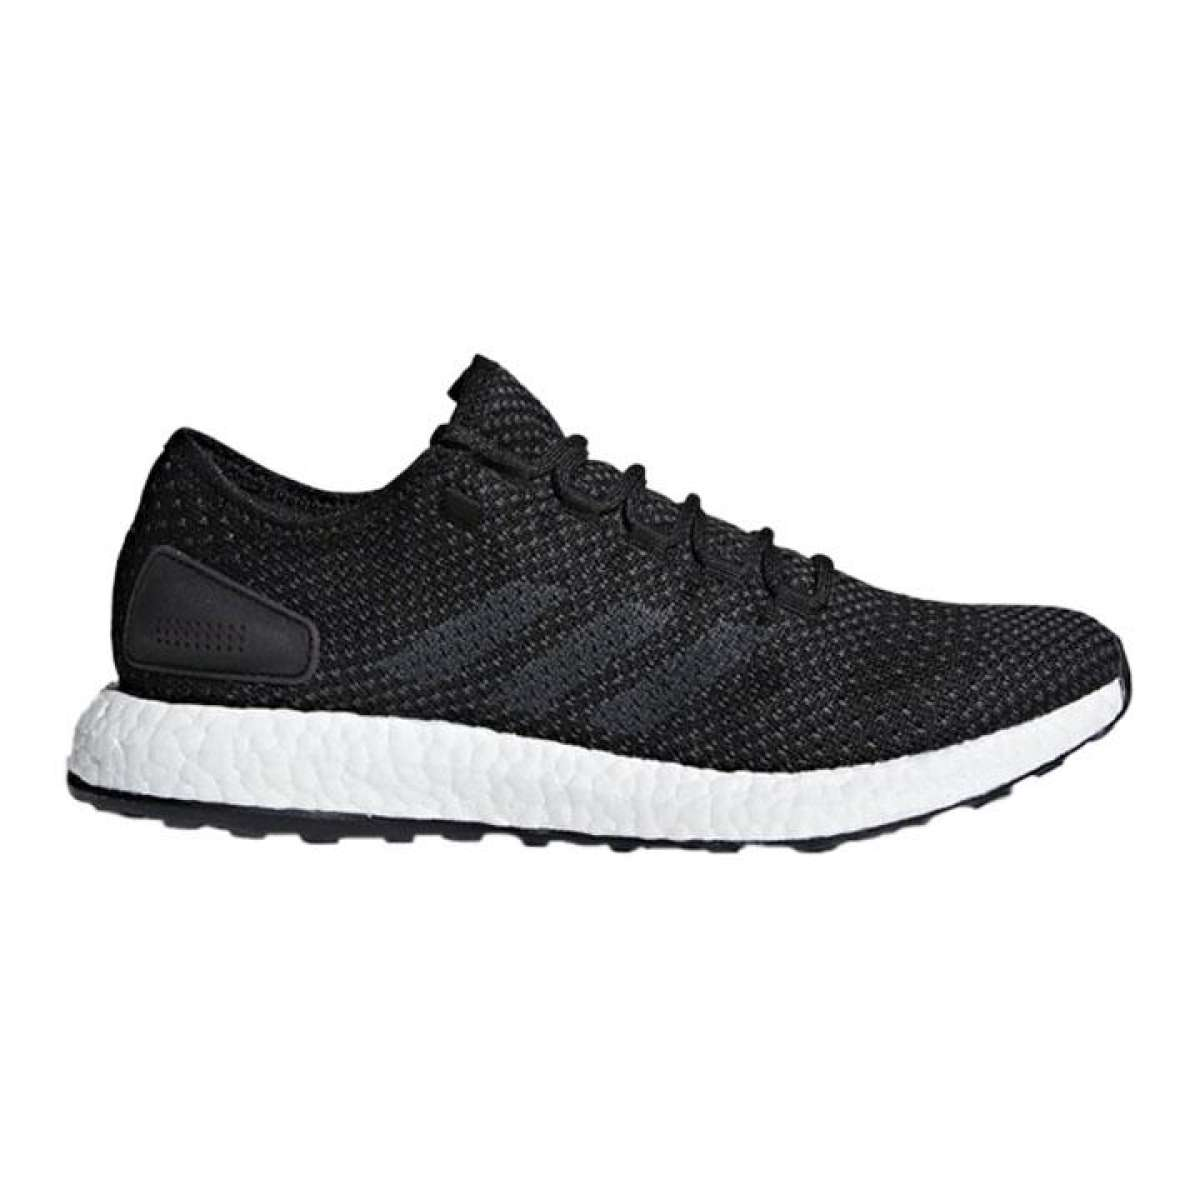 Adidas Black Pureboost Clima Running Shoes For Men - BY8899